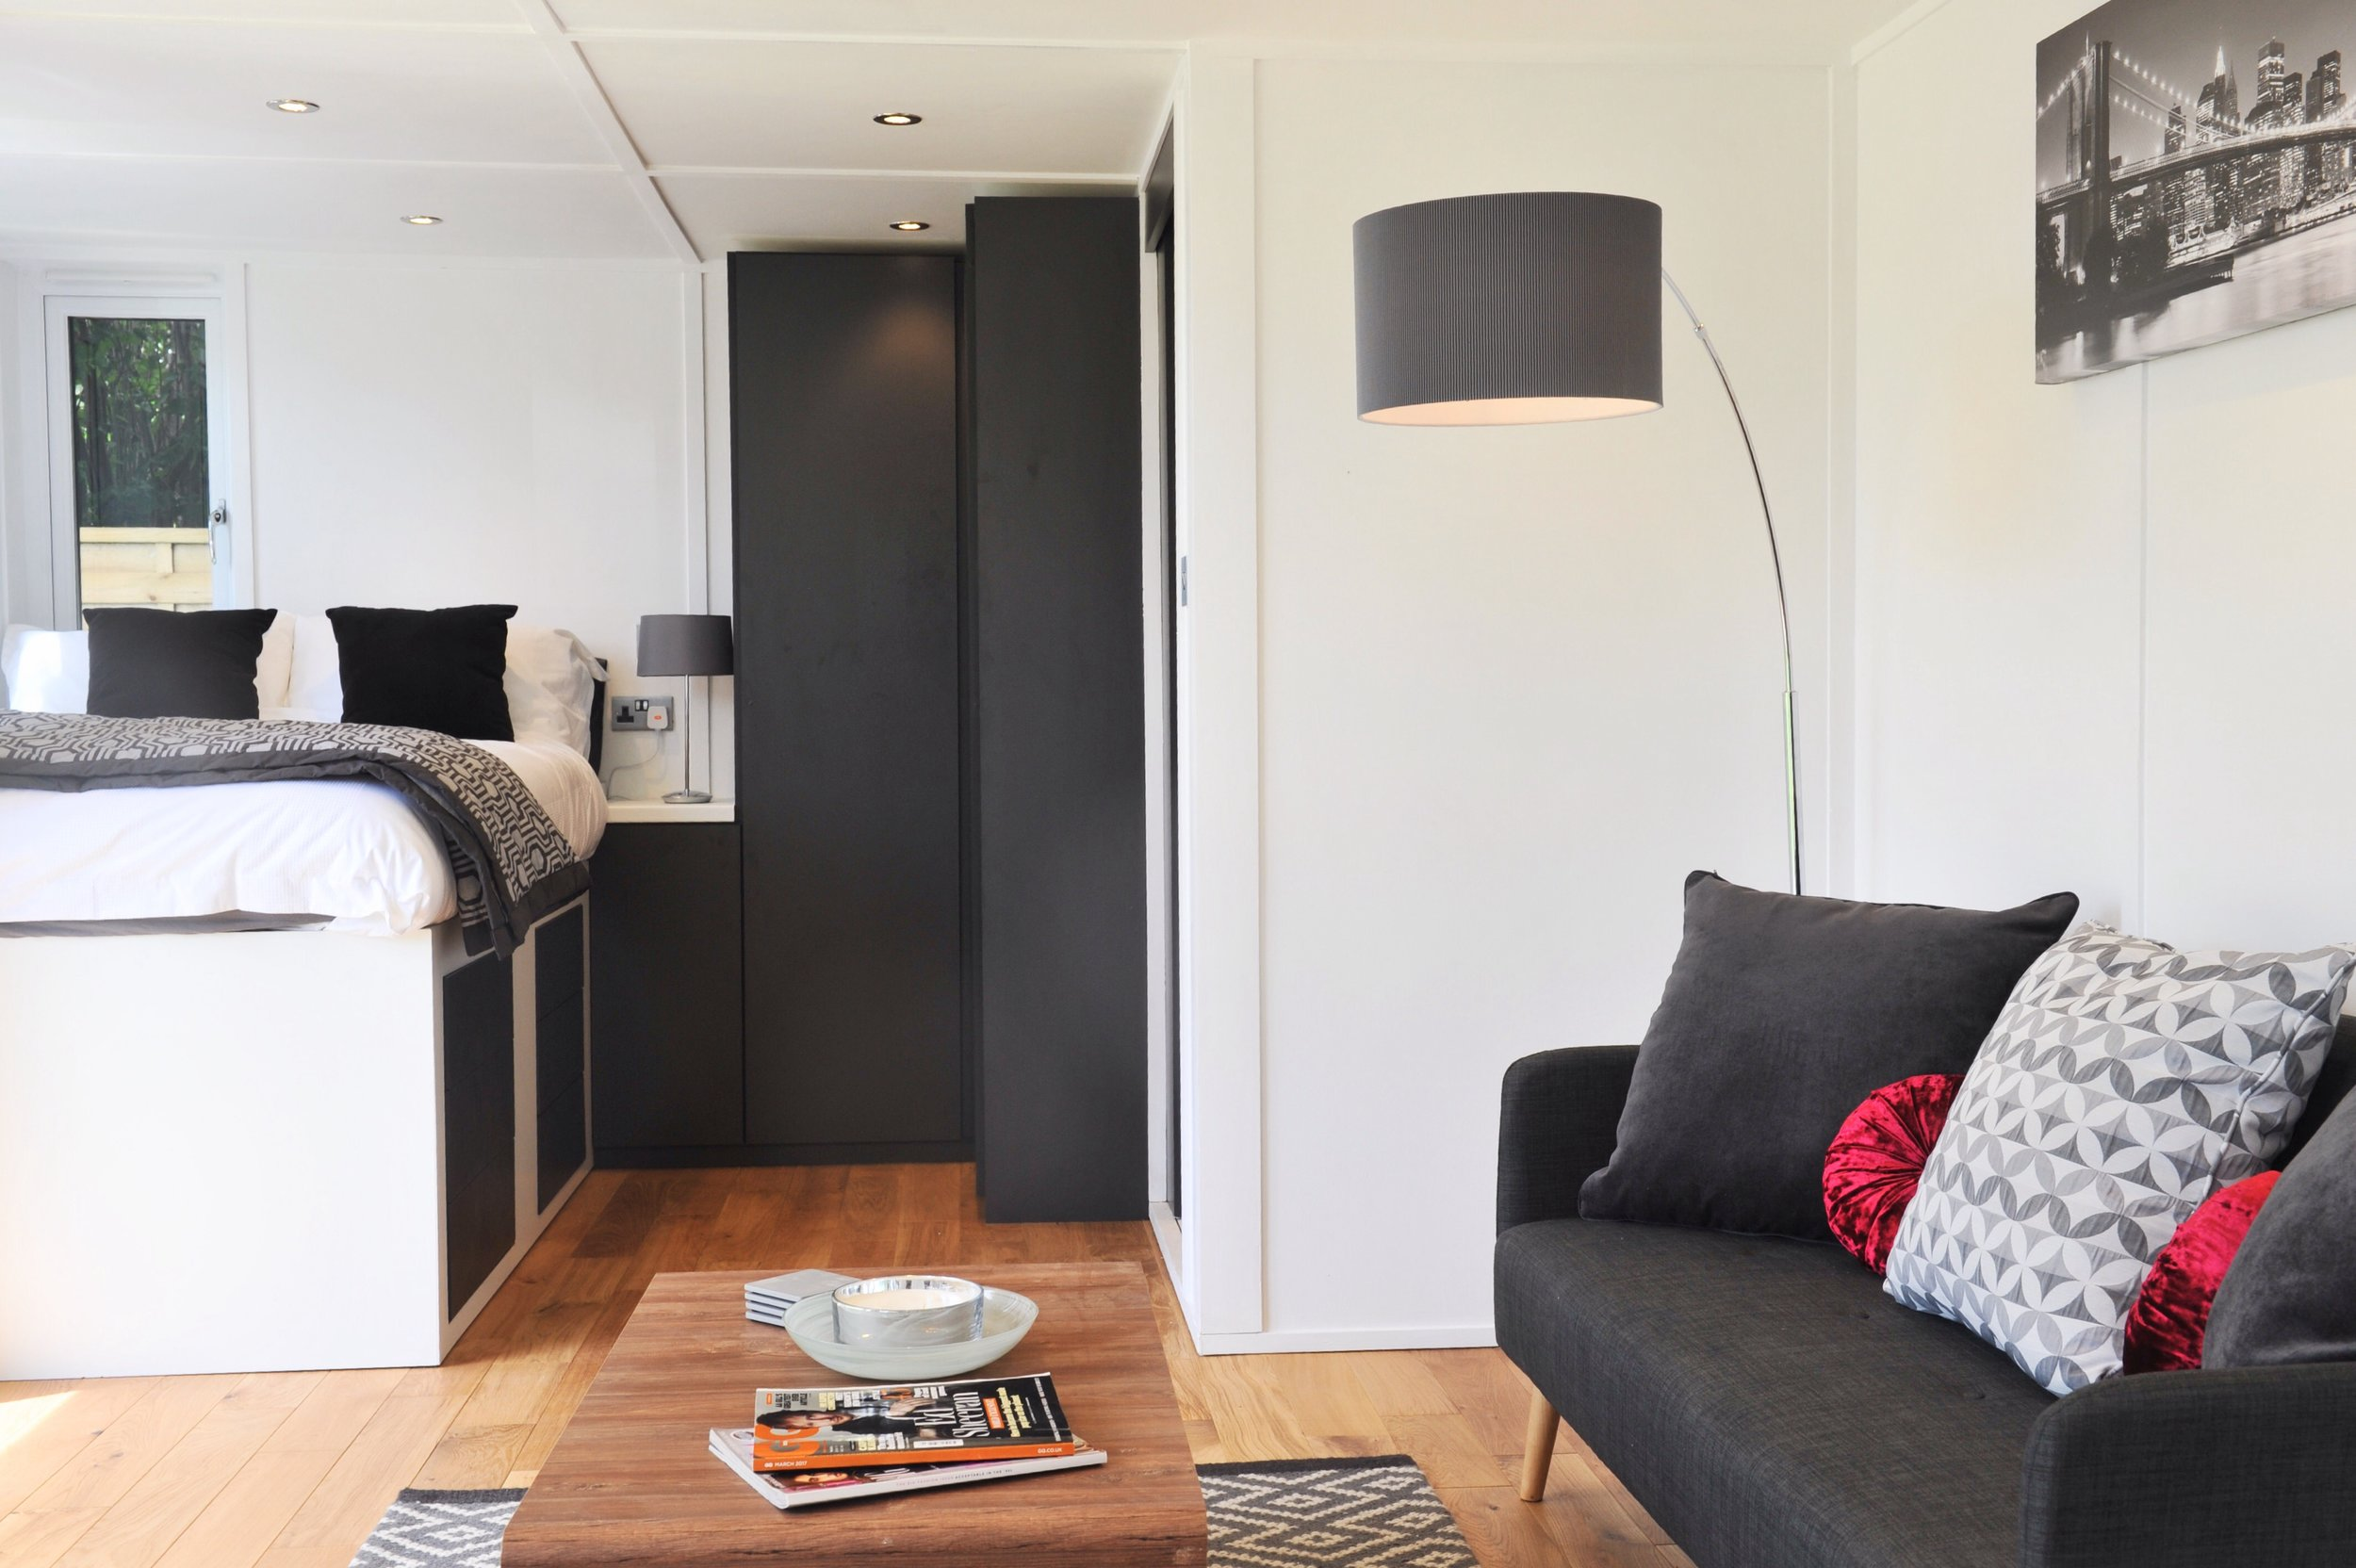 Interior of the Zedbox 635 - With Highline Loft Bed, Bedside Cabinet & Floor to Ceiling Wardrobe